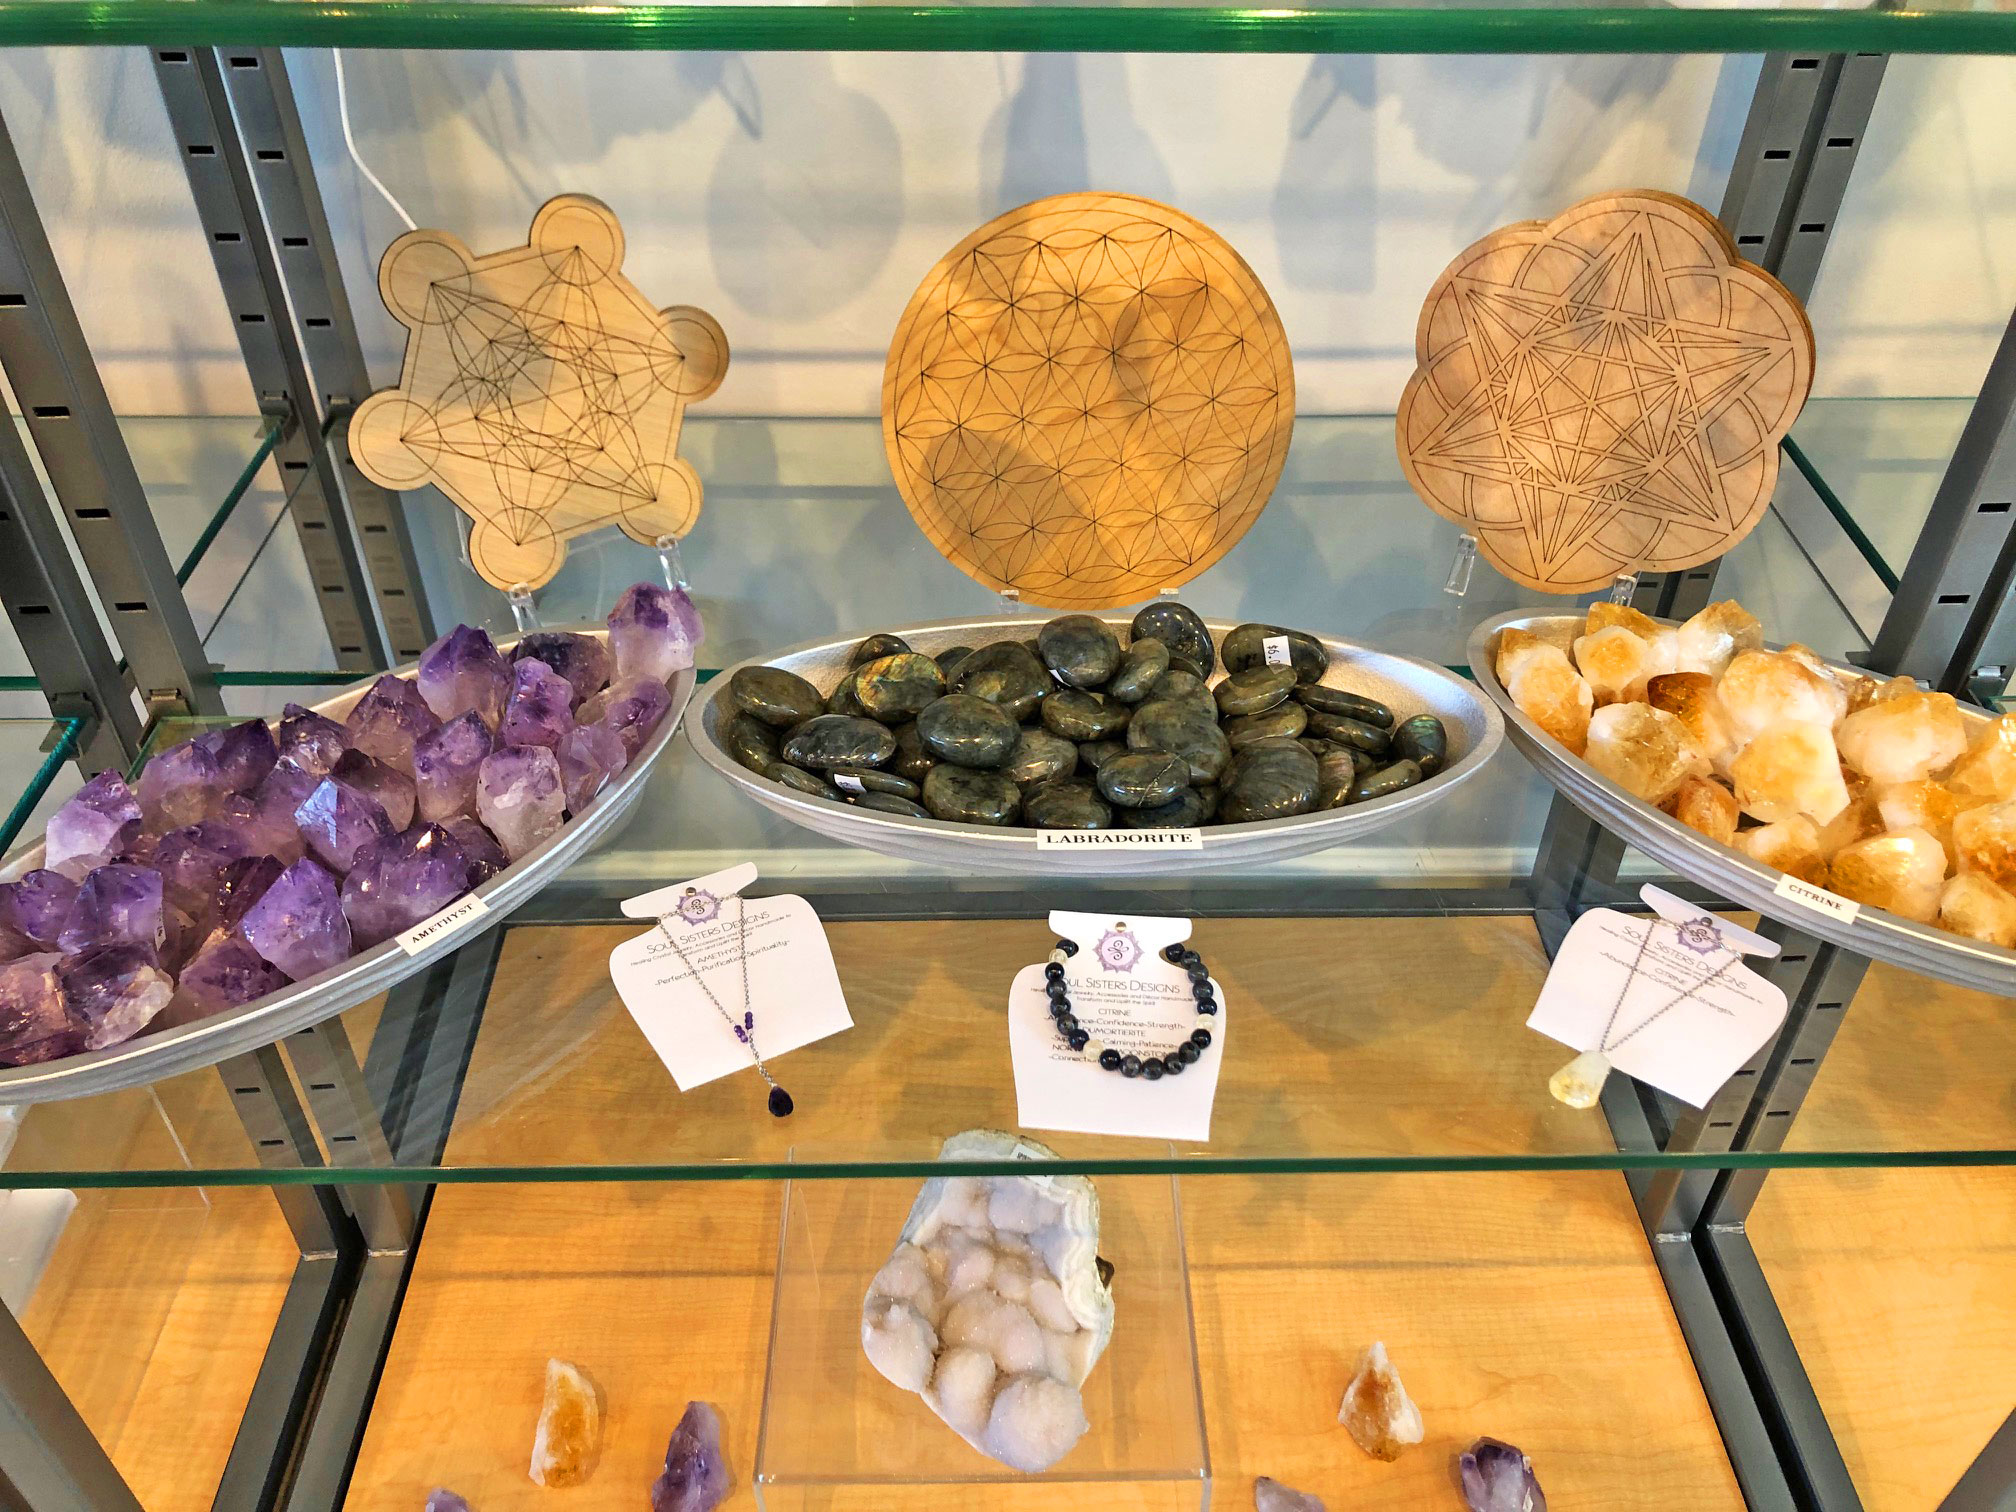 remedy-within-crystals-crystal-shop-rock-shop-minerals-spiritual-remedies